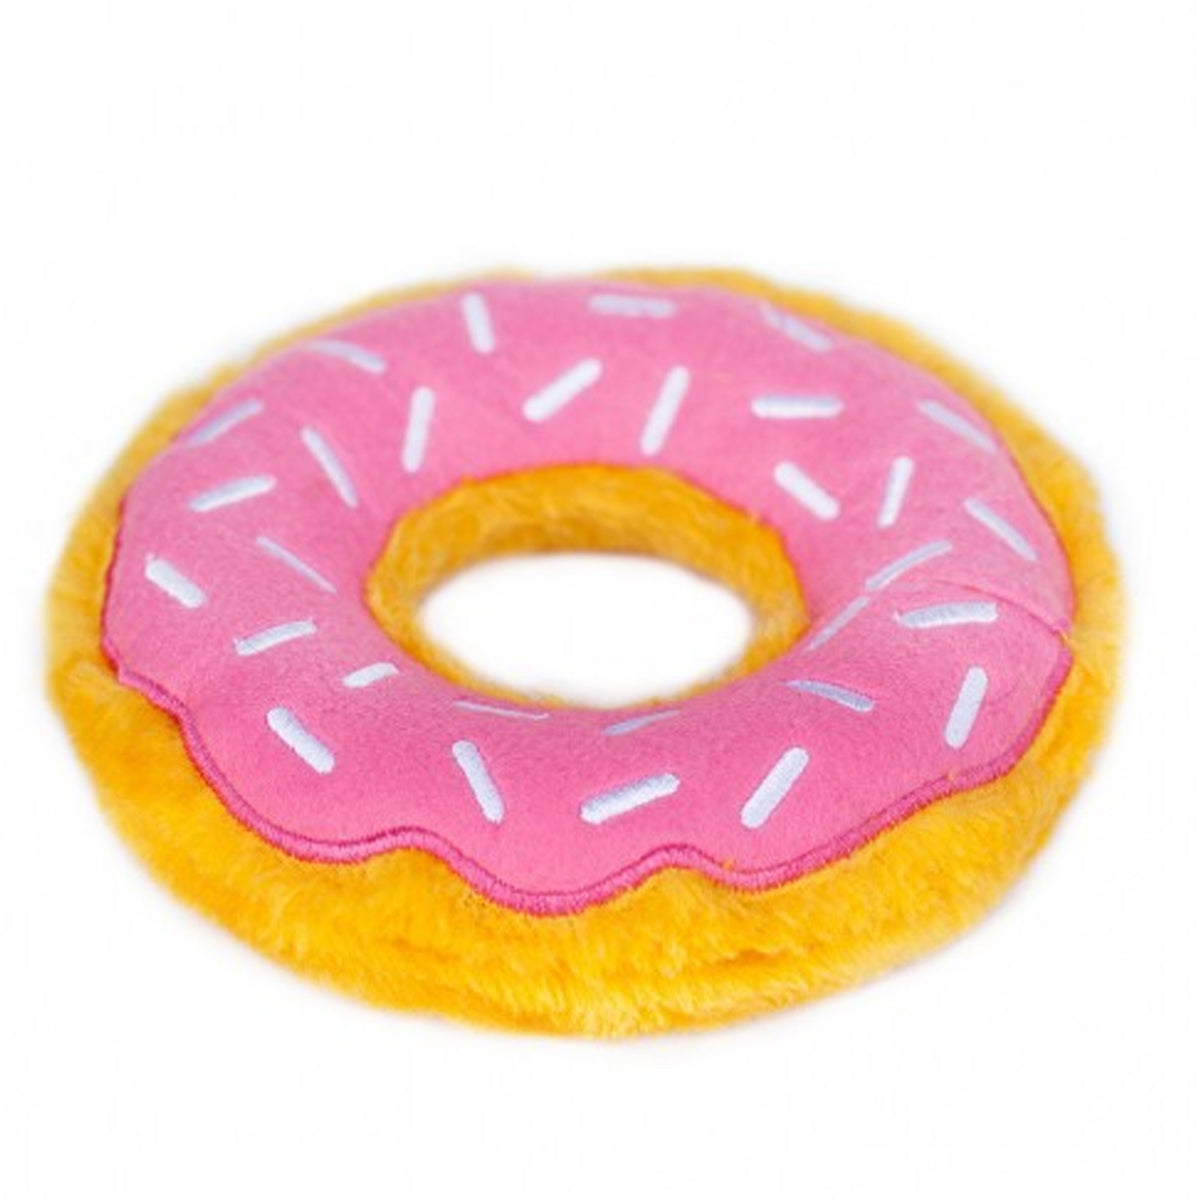 Donutz Dog Toy - Strawberry